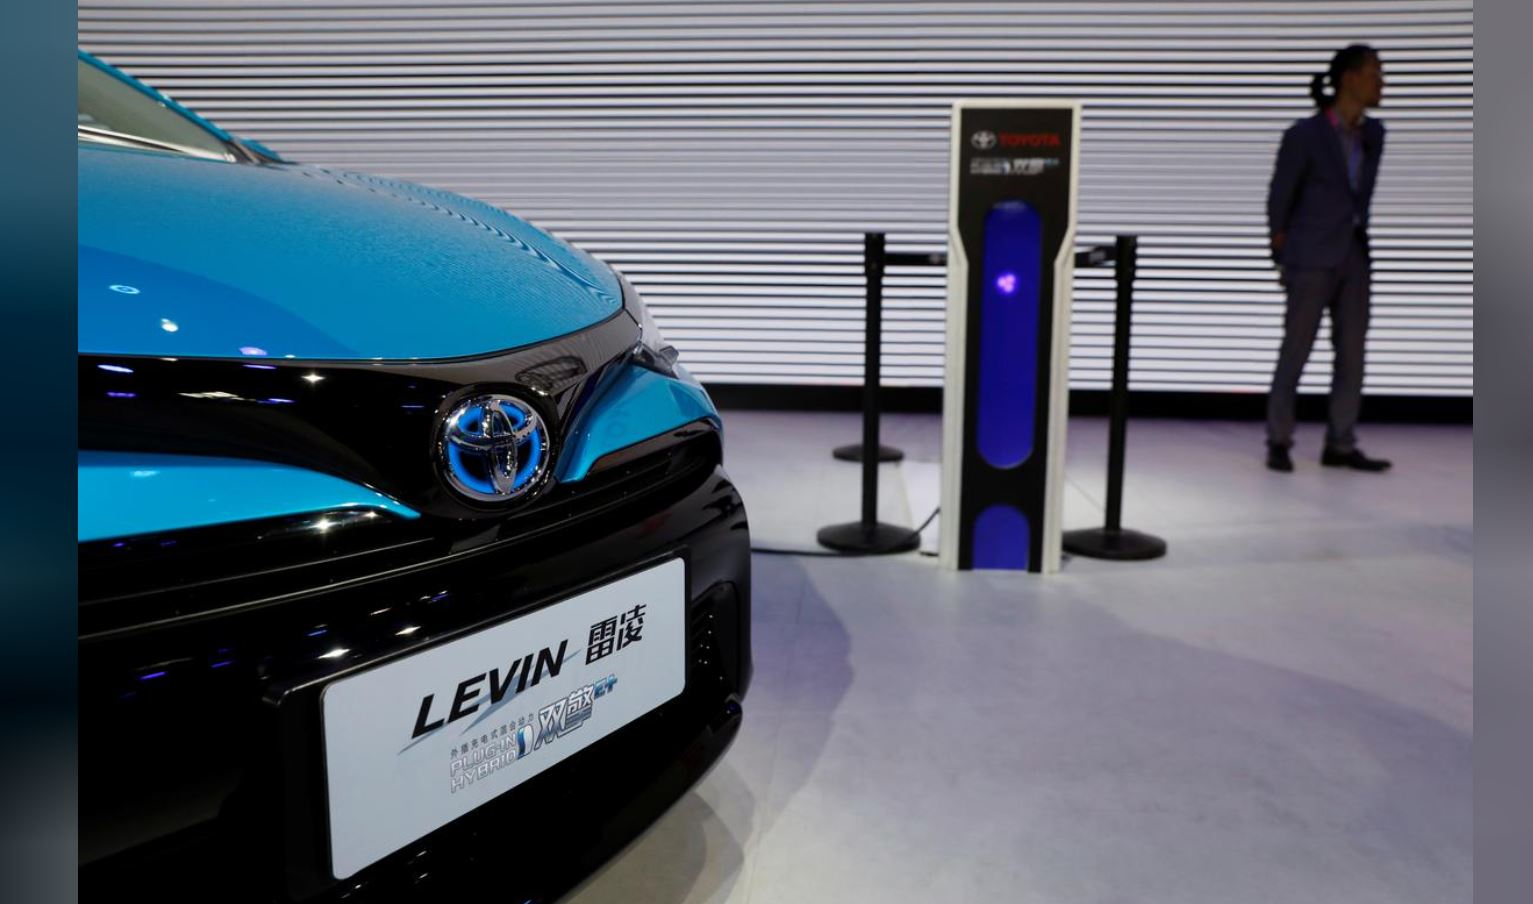 China eases green rules for petrol-electric hybrids, giving makers space to manoeuvre